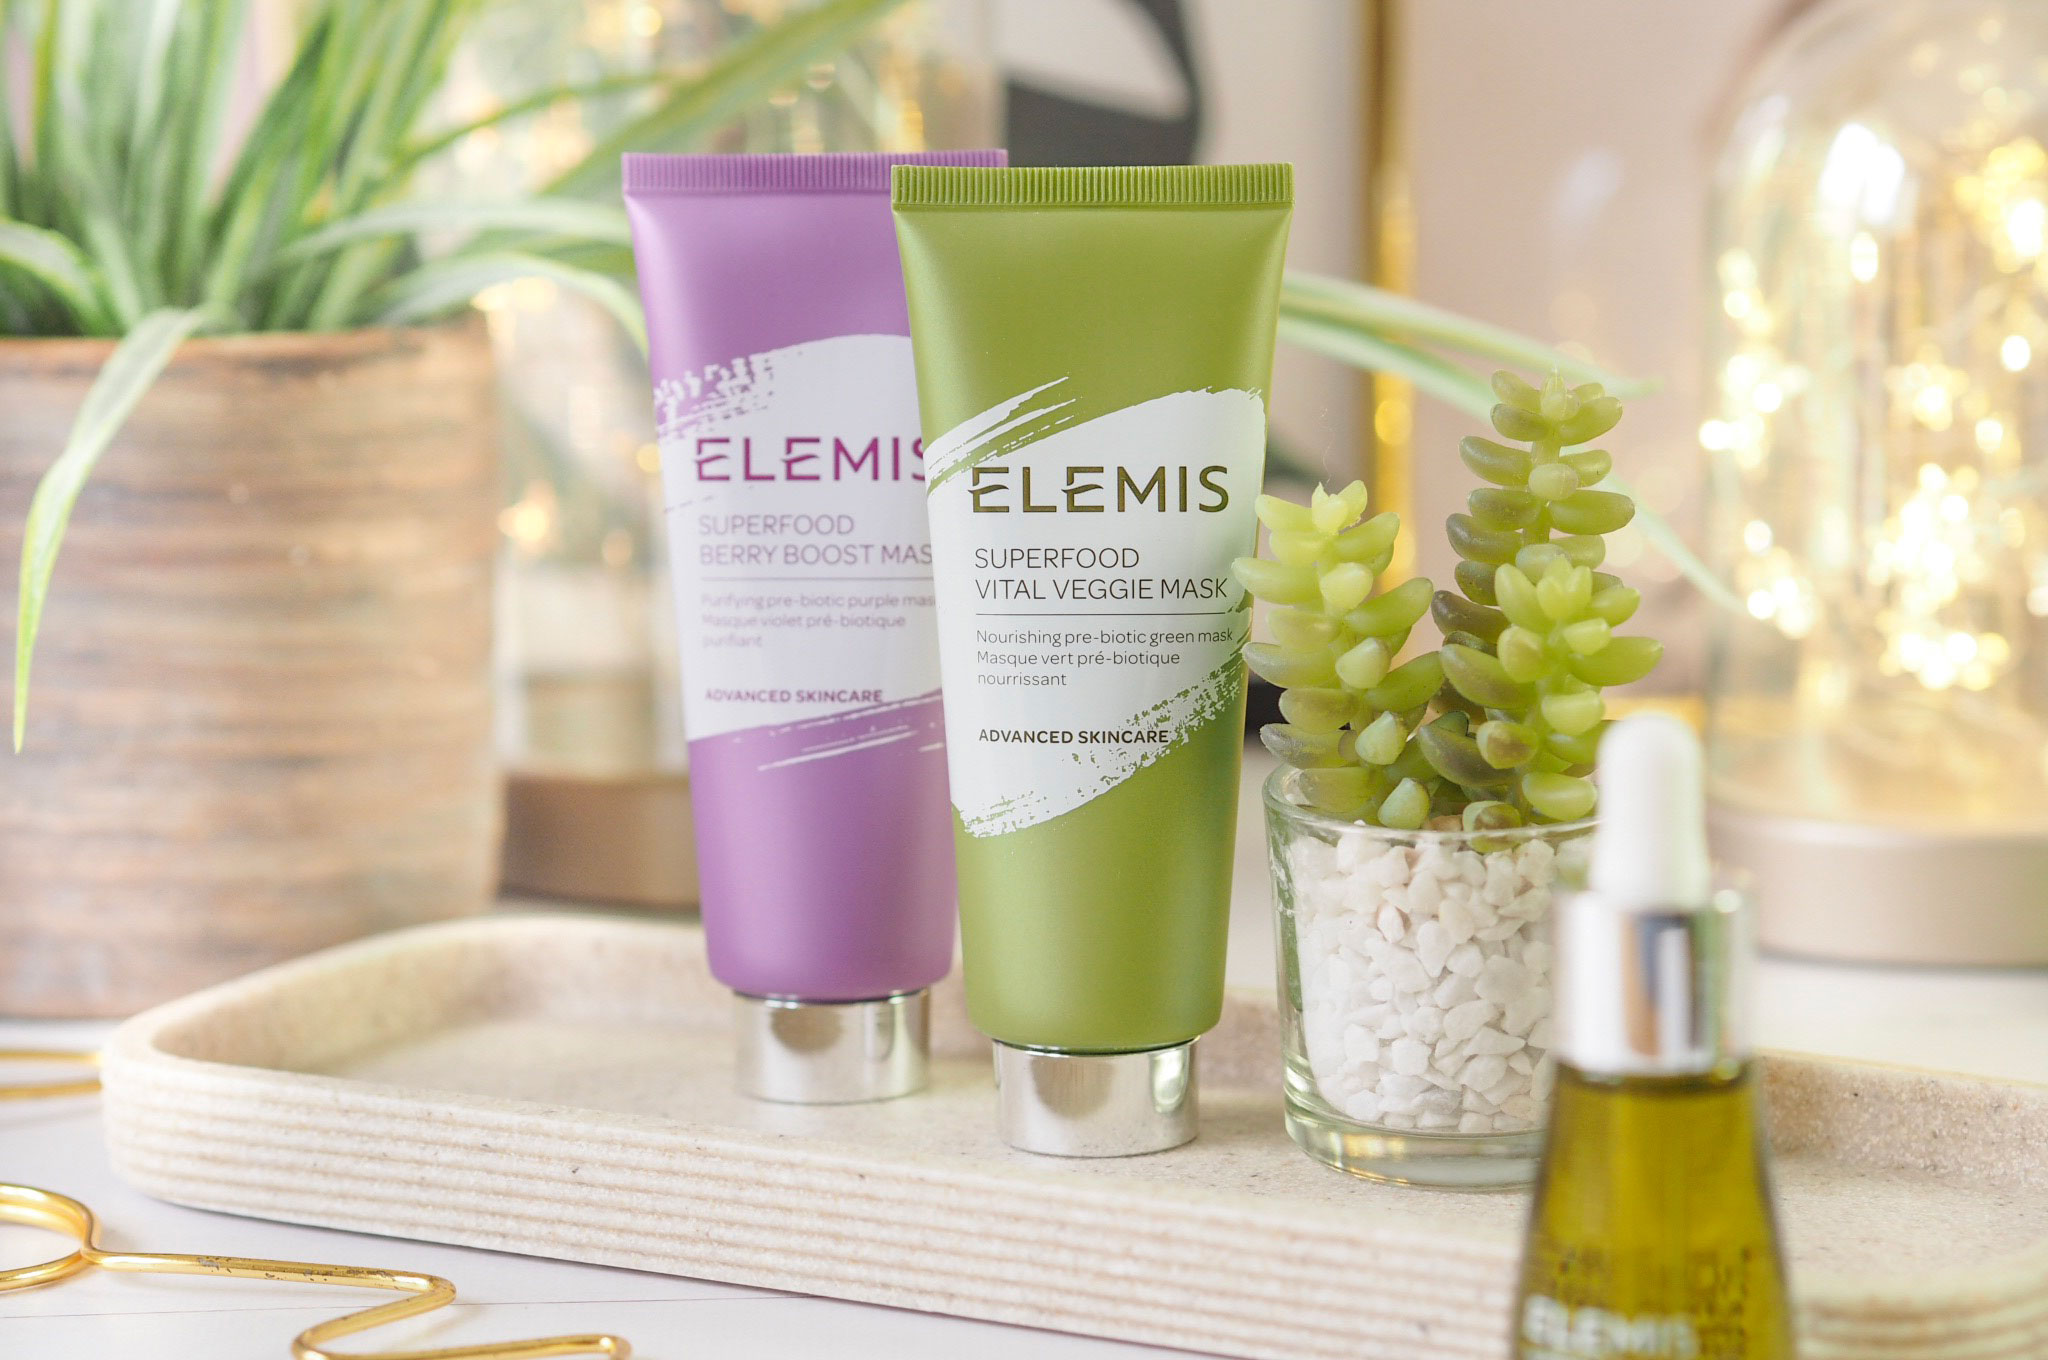 Elemis Superfood Vital Veggie Mask Review